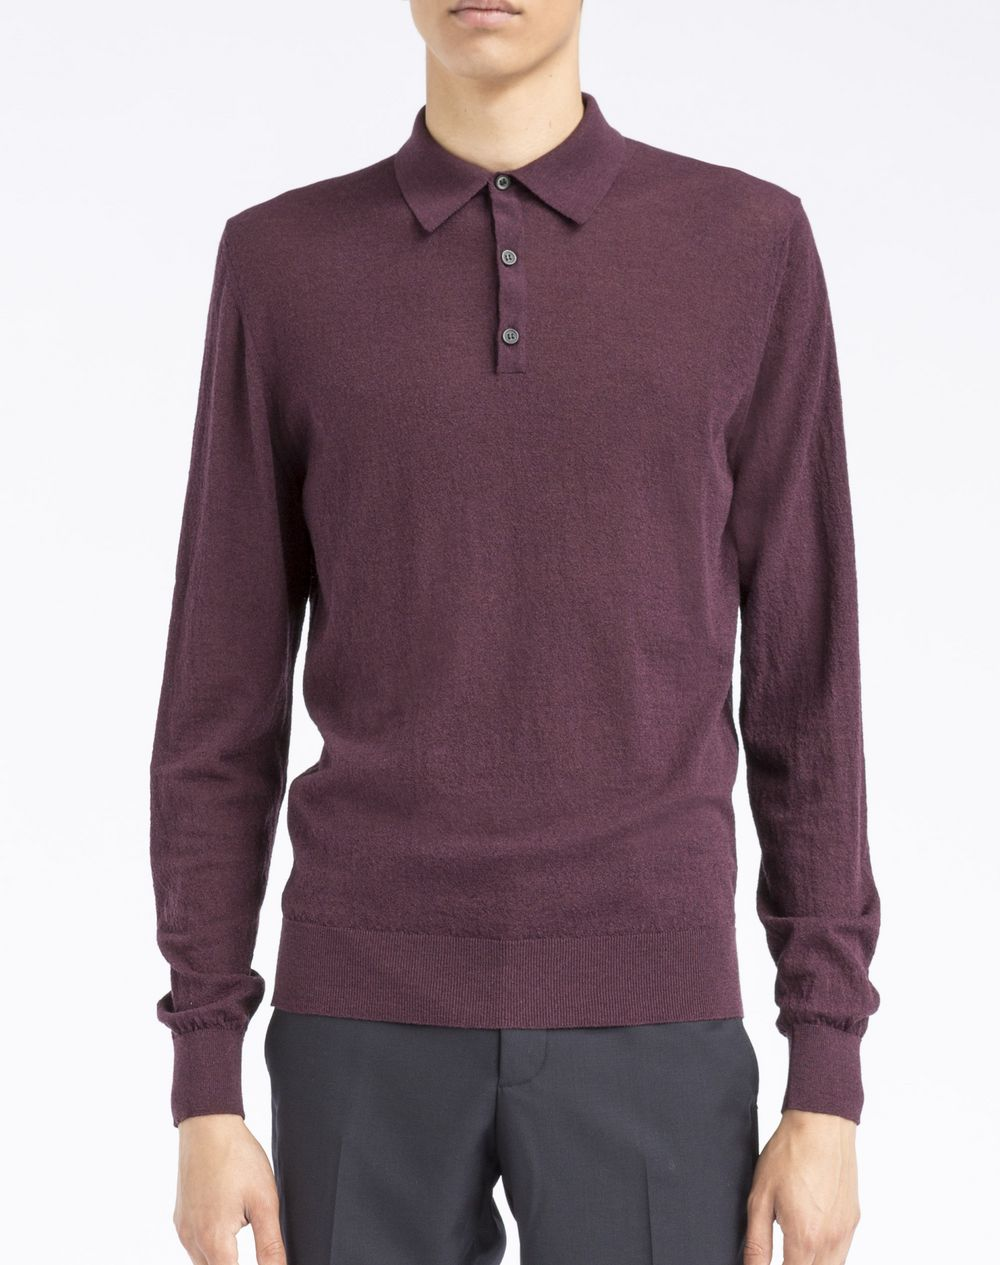 Lanvin Polo Collared Embossed Effect Knit Sweater Knitwear